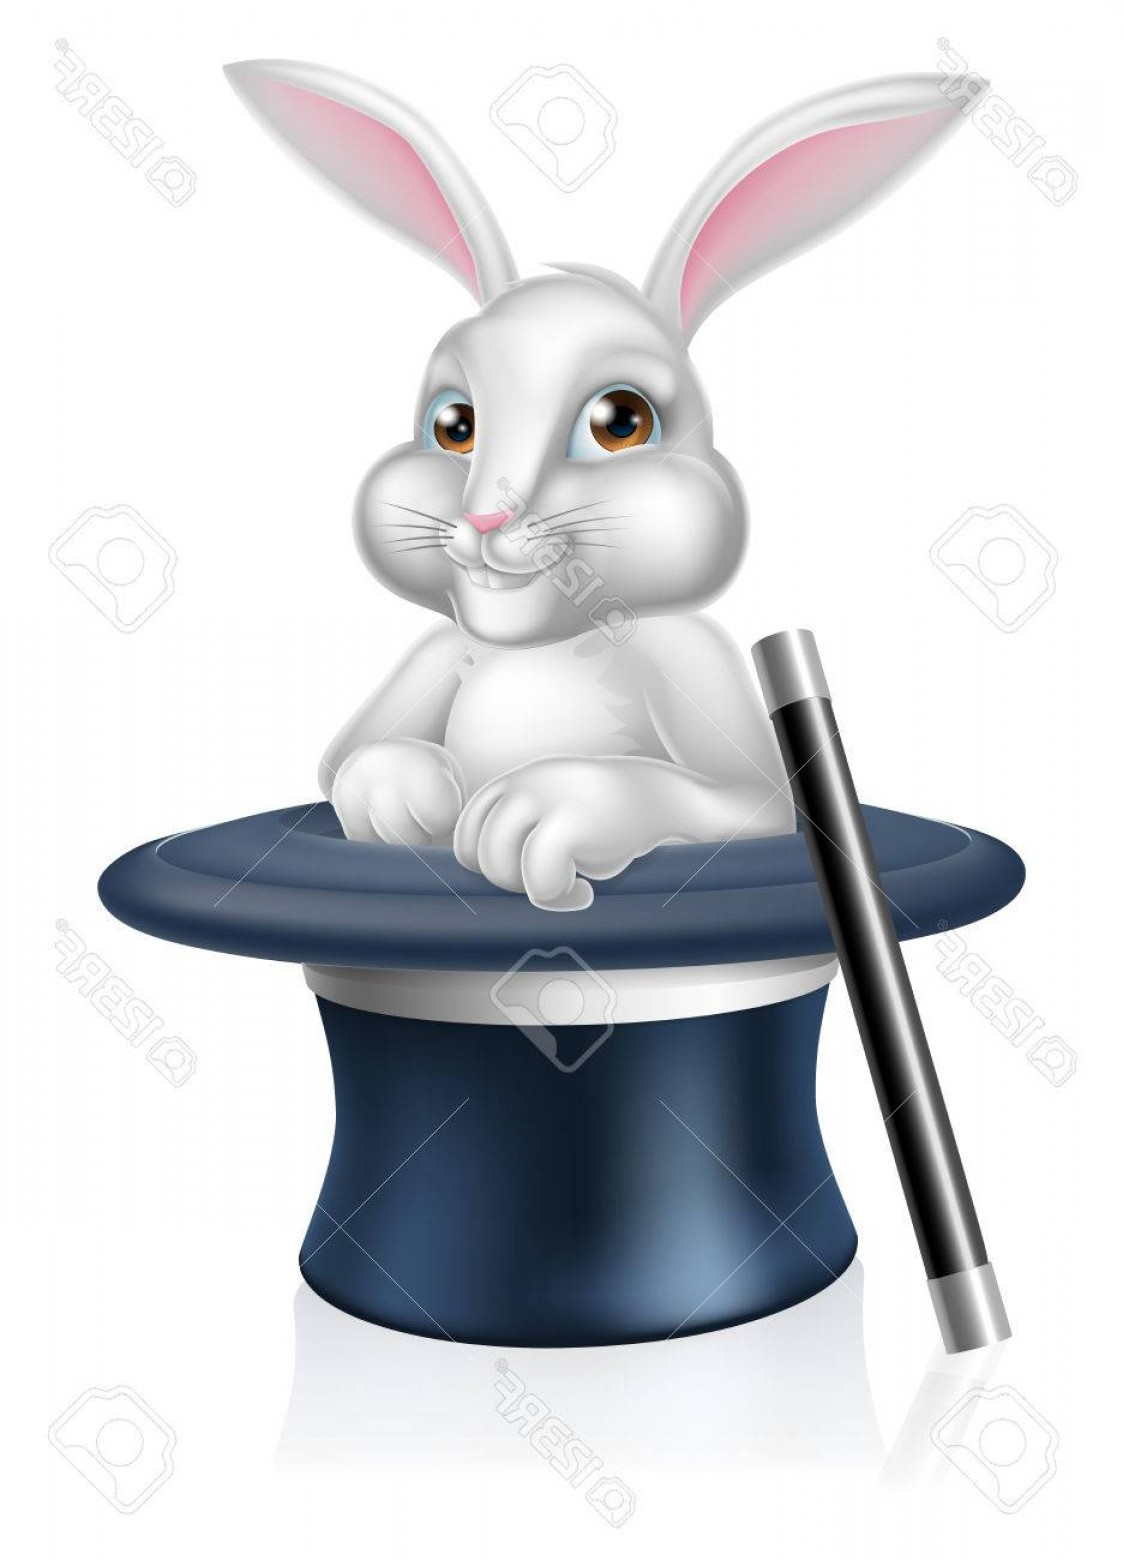 Animated Bunny Face Vector: Photostock Vector A Cute Cartoon Magicians Bunny Rabbit Coming Out Of A Top Hat With A Magic Wand